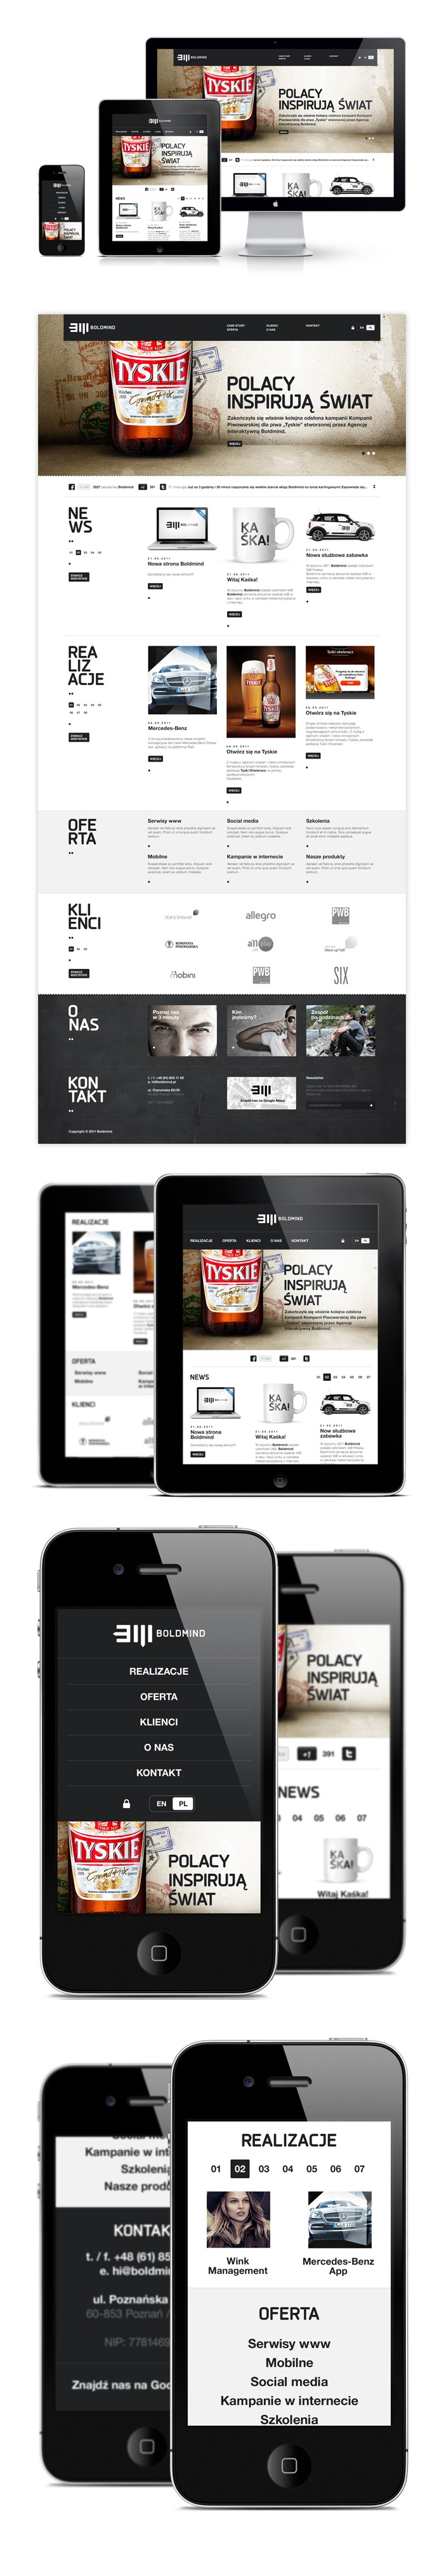 """Boldmind by Maciej Mach - """"This is an example of responsive design I prepared for Boldmind Interactive Agency. The project included browser, tablet and smartphone version of the website."""""""